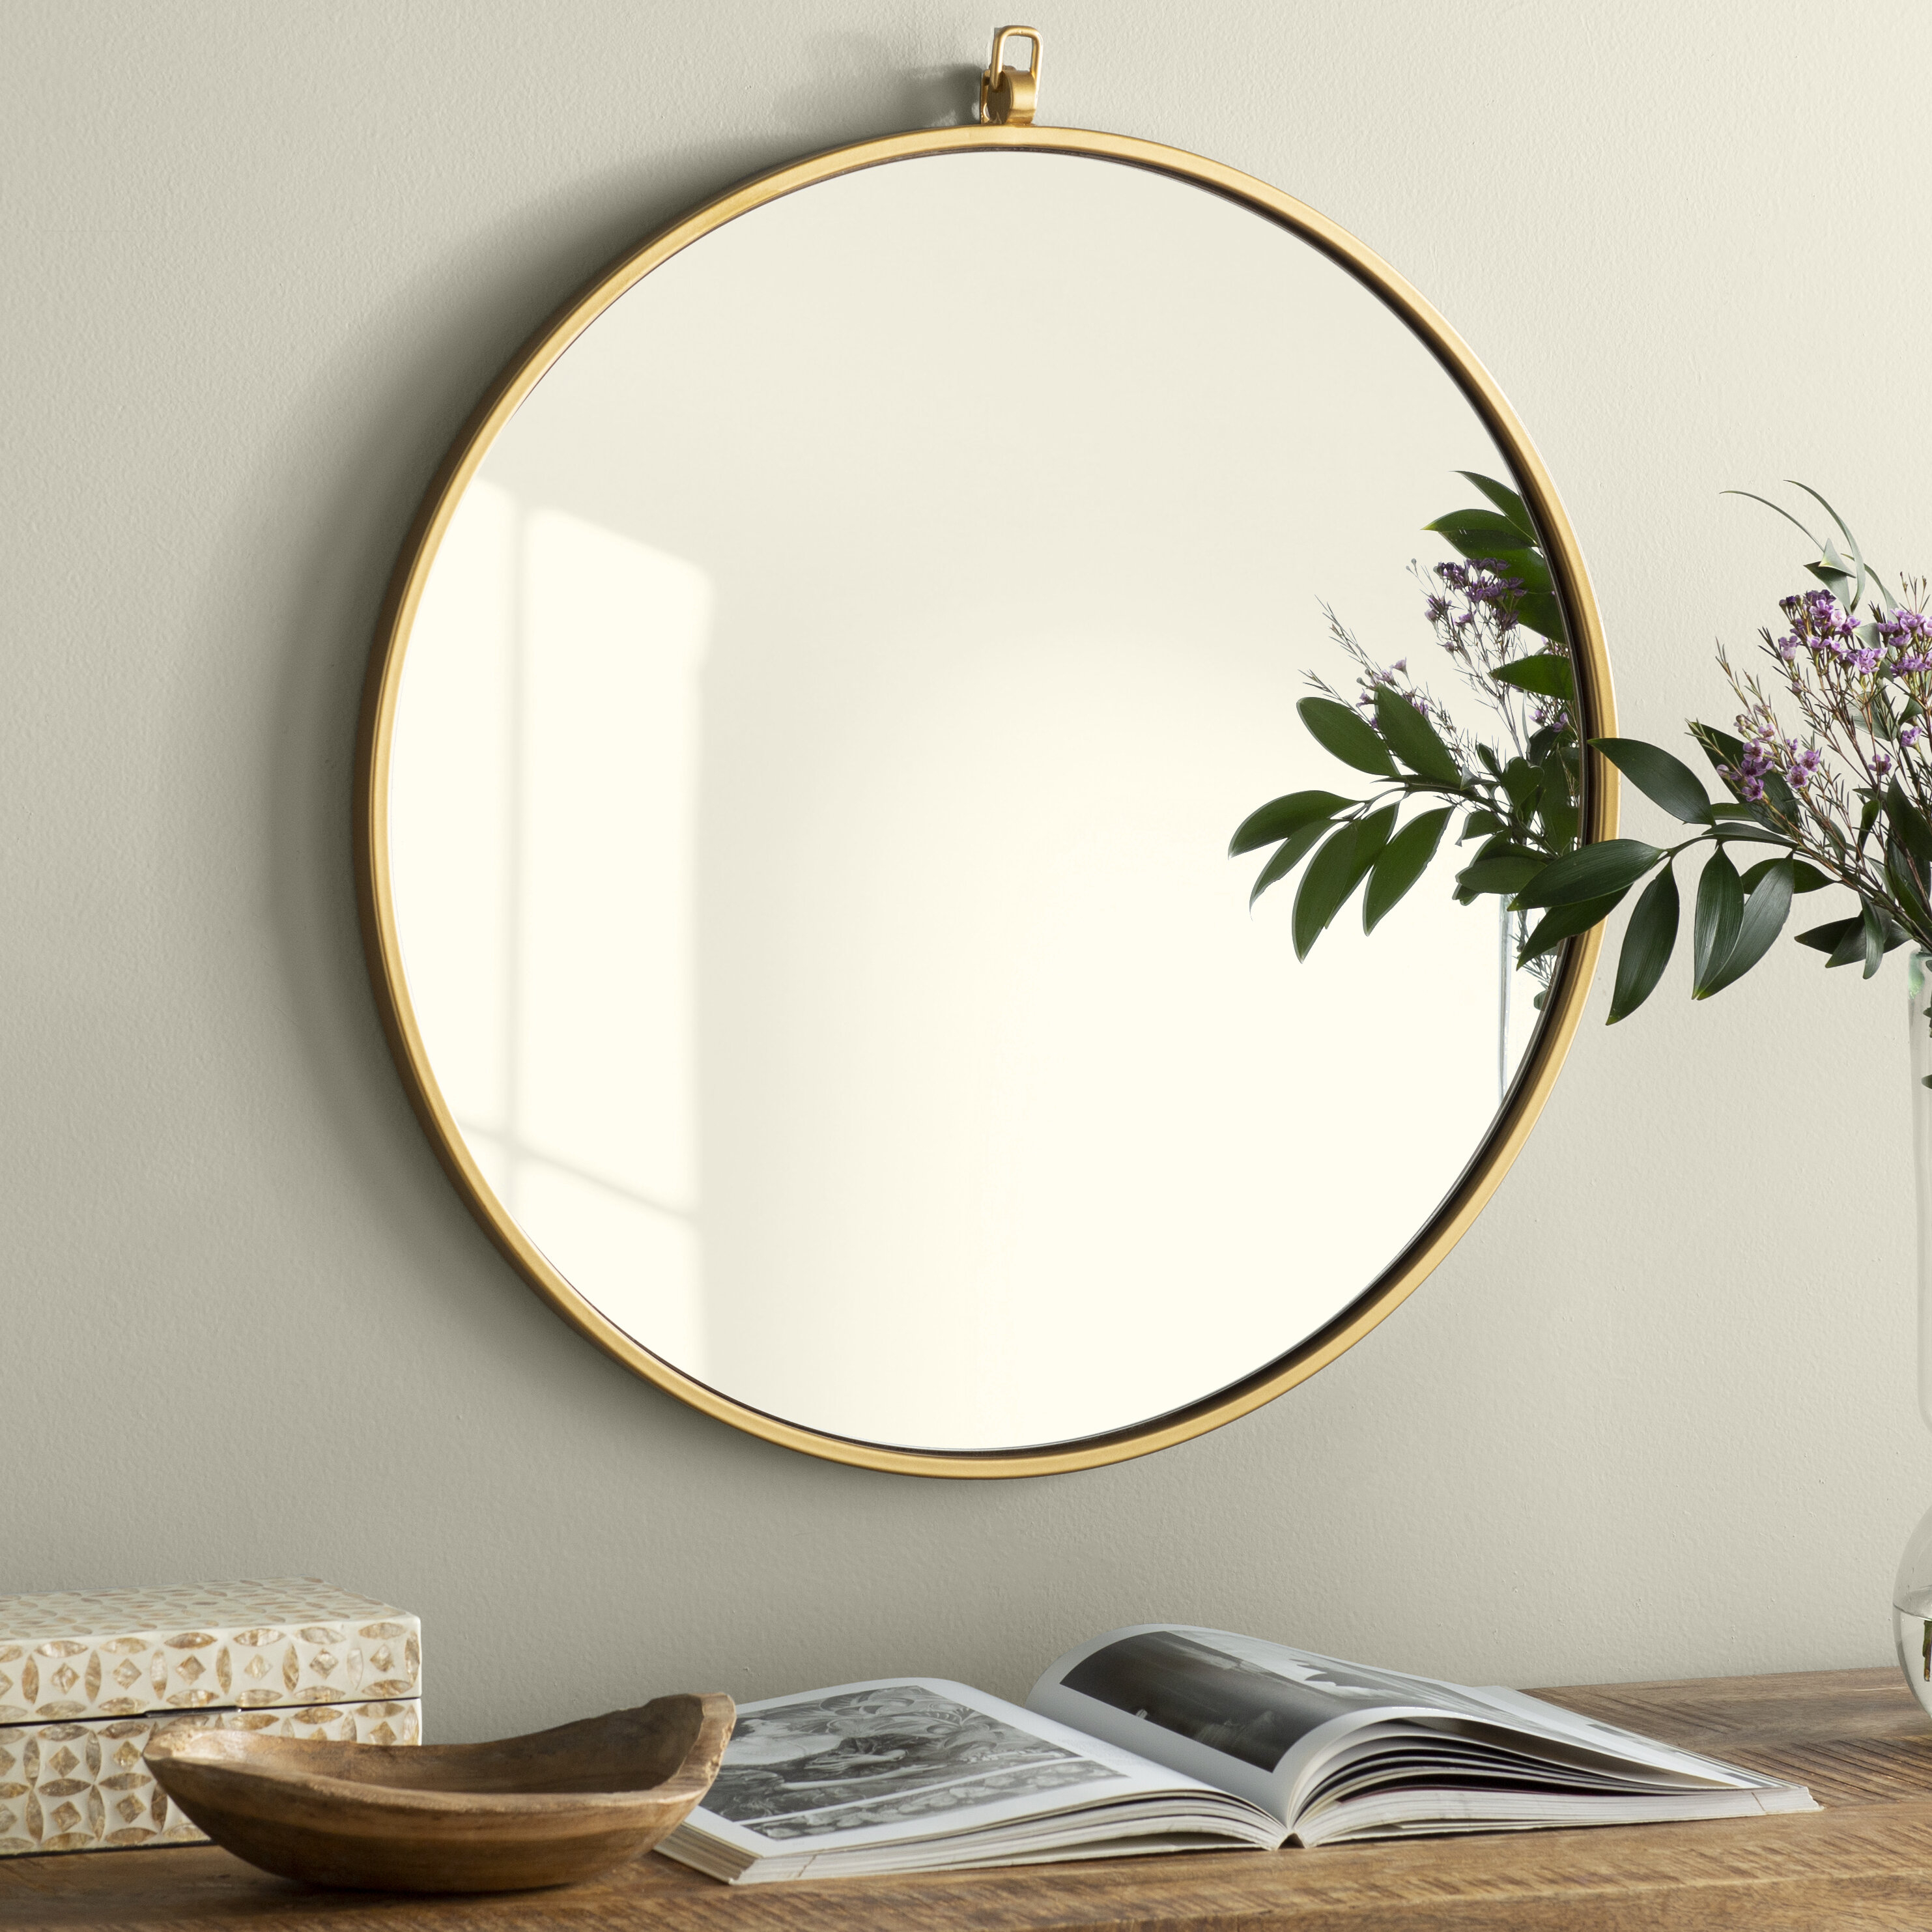 Tanner Accent Mirror In 2019 For The House T Mirrors With Tanner Accent Mirrors (View 5 of 20)